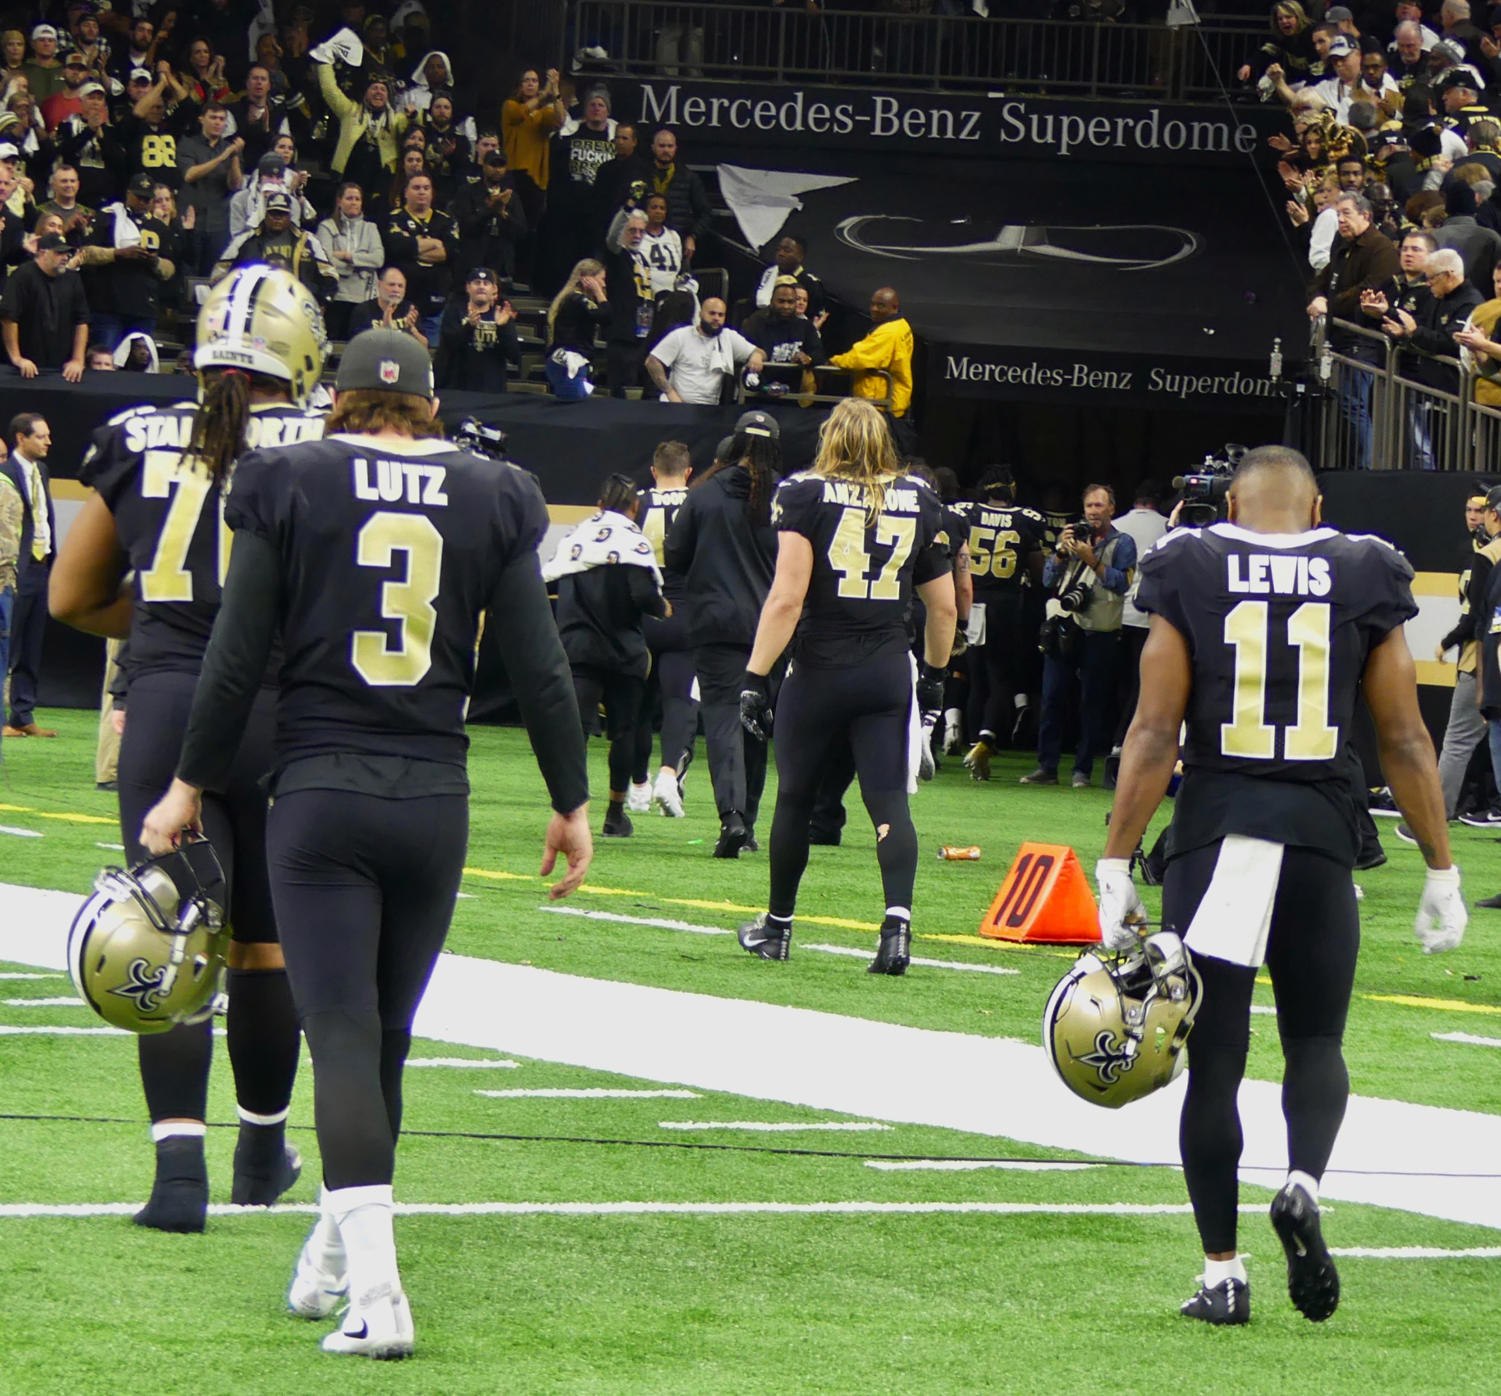 Saints+special+teams+leave+the+field+after+their+loss+in+the+NFC+Championship.+Photo+credit%3A+Olivia+Ledet